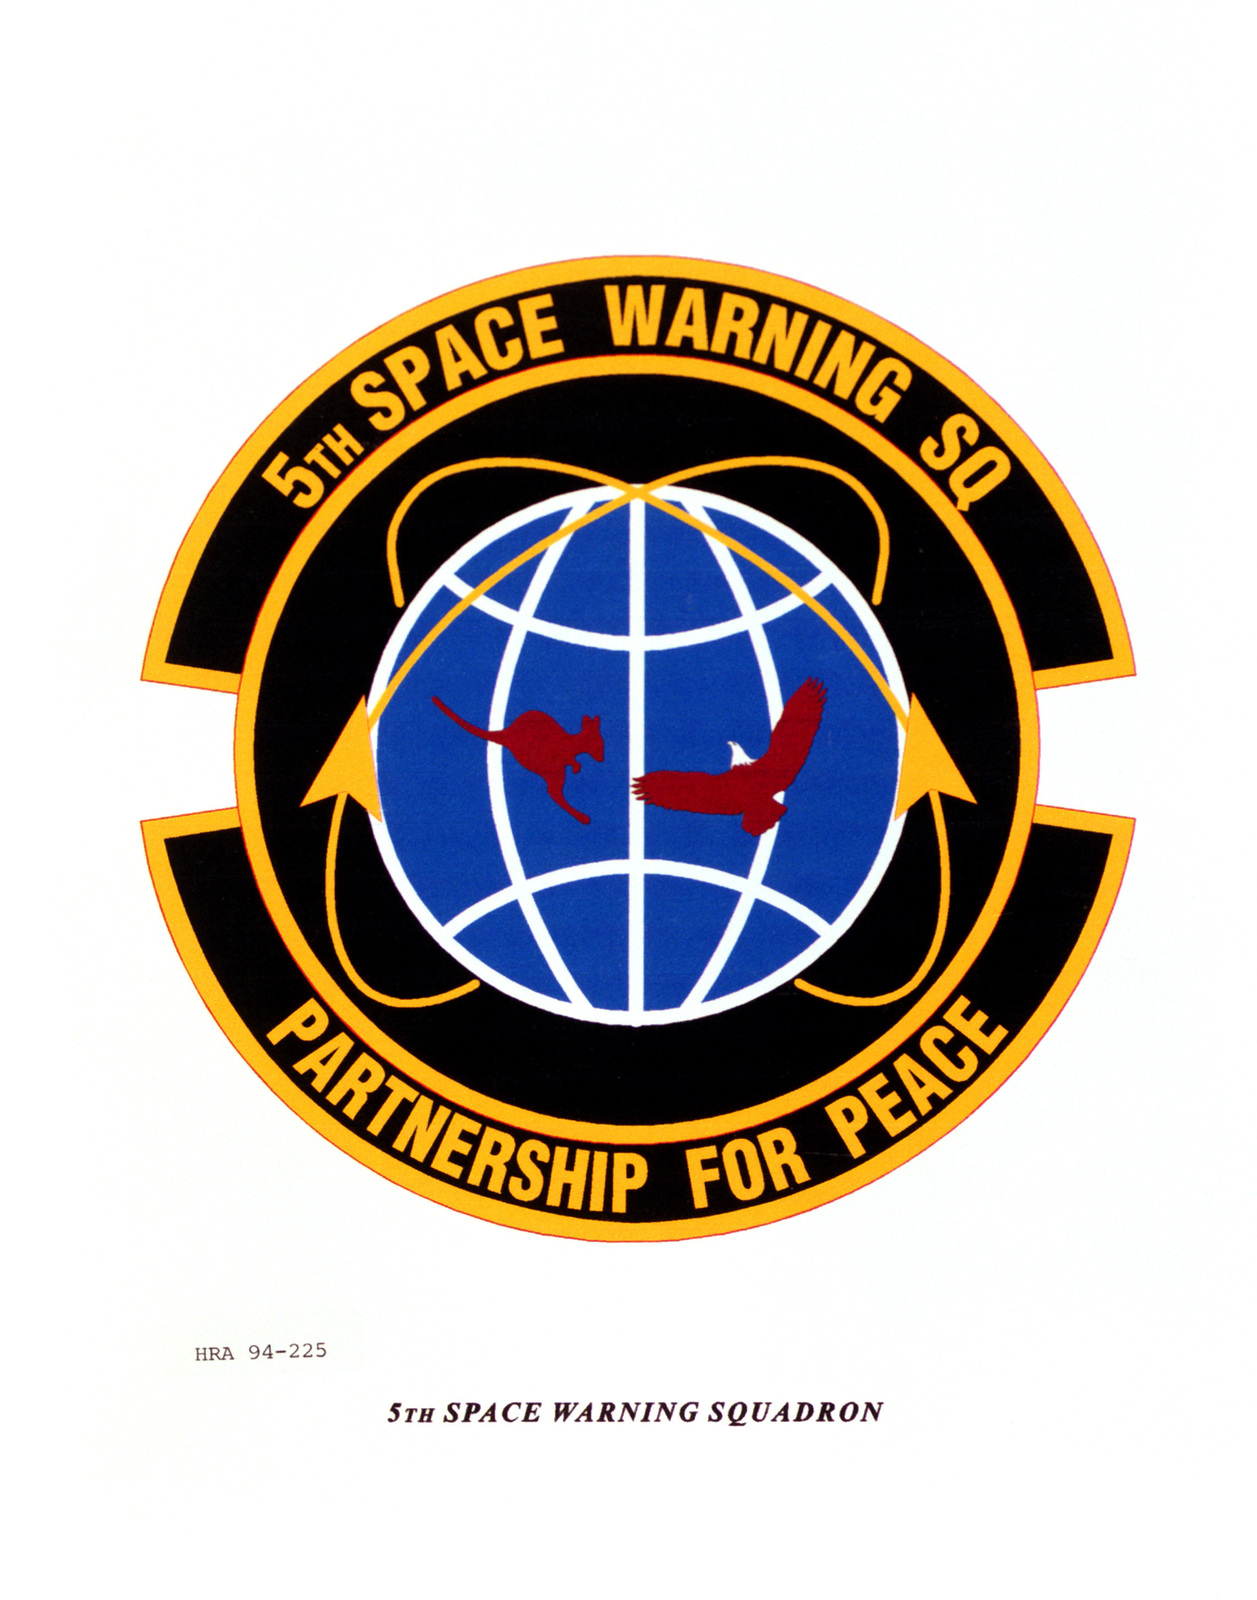 Approved Insignia of the 5th Space Warning Squadron